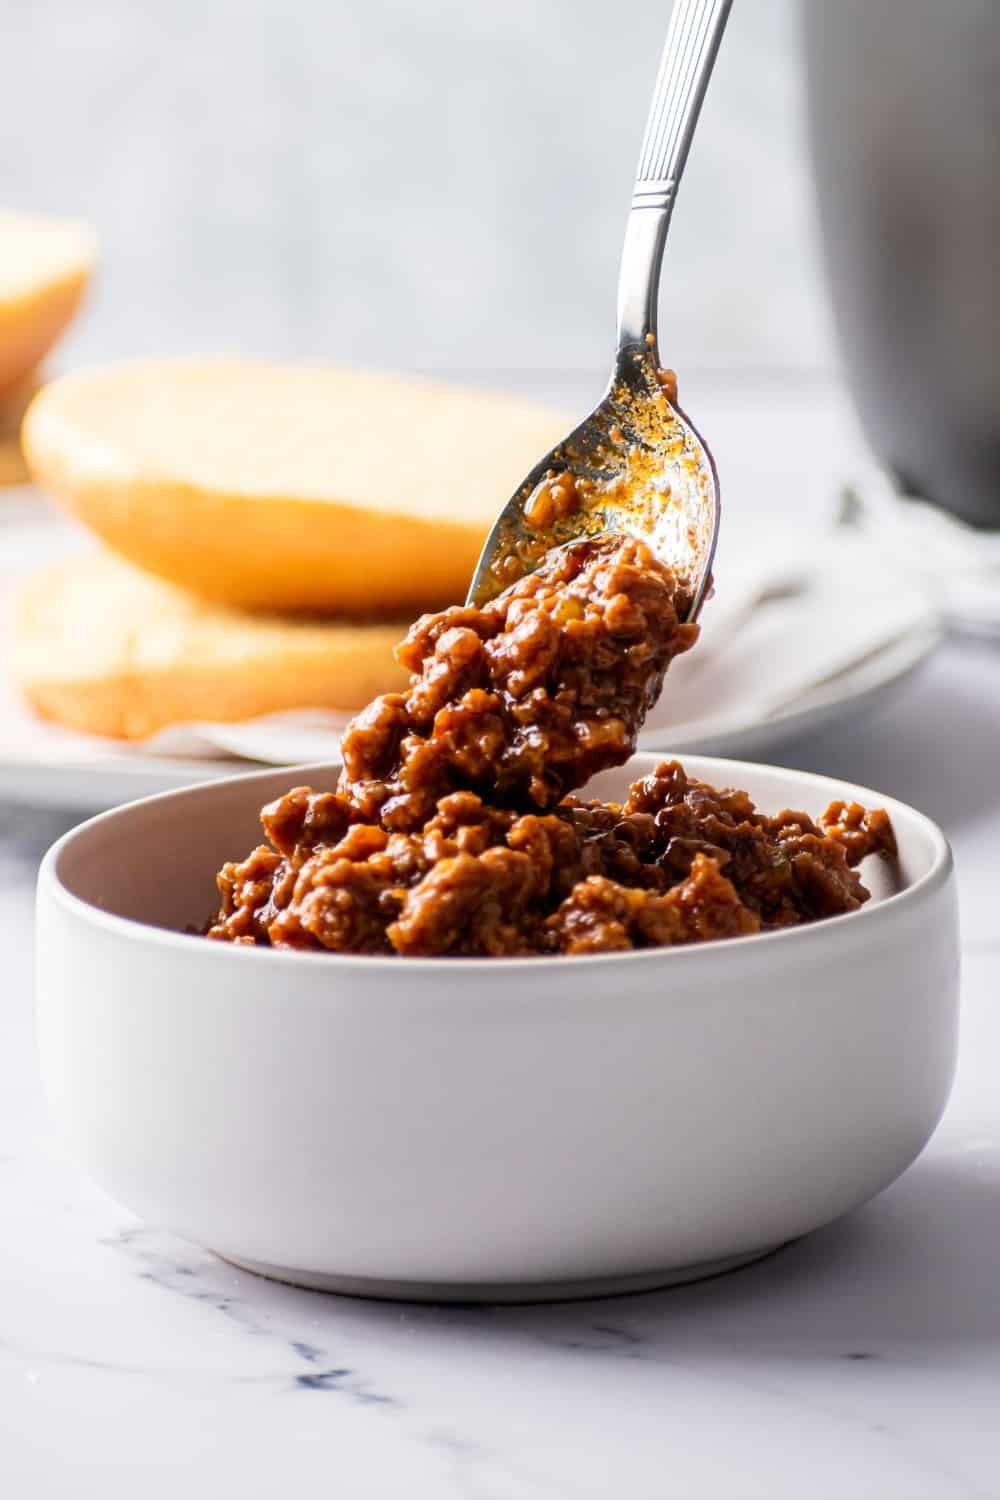 A white bowl on the white counter filled with sloppy Joes. There is a spoon hovering over the bowl spoon in some sloppy Joe into the bowl. Behind the bowl is a brioche bun on a piece of parchment paper on a gray plate.